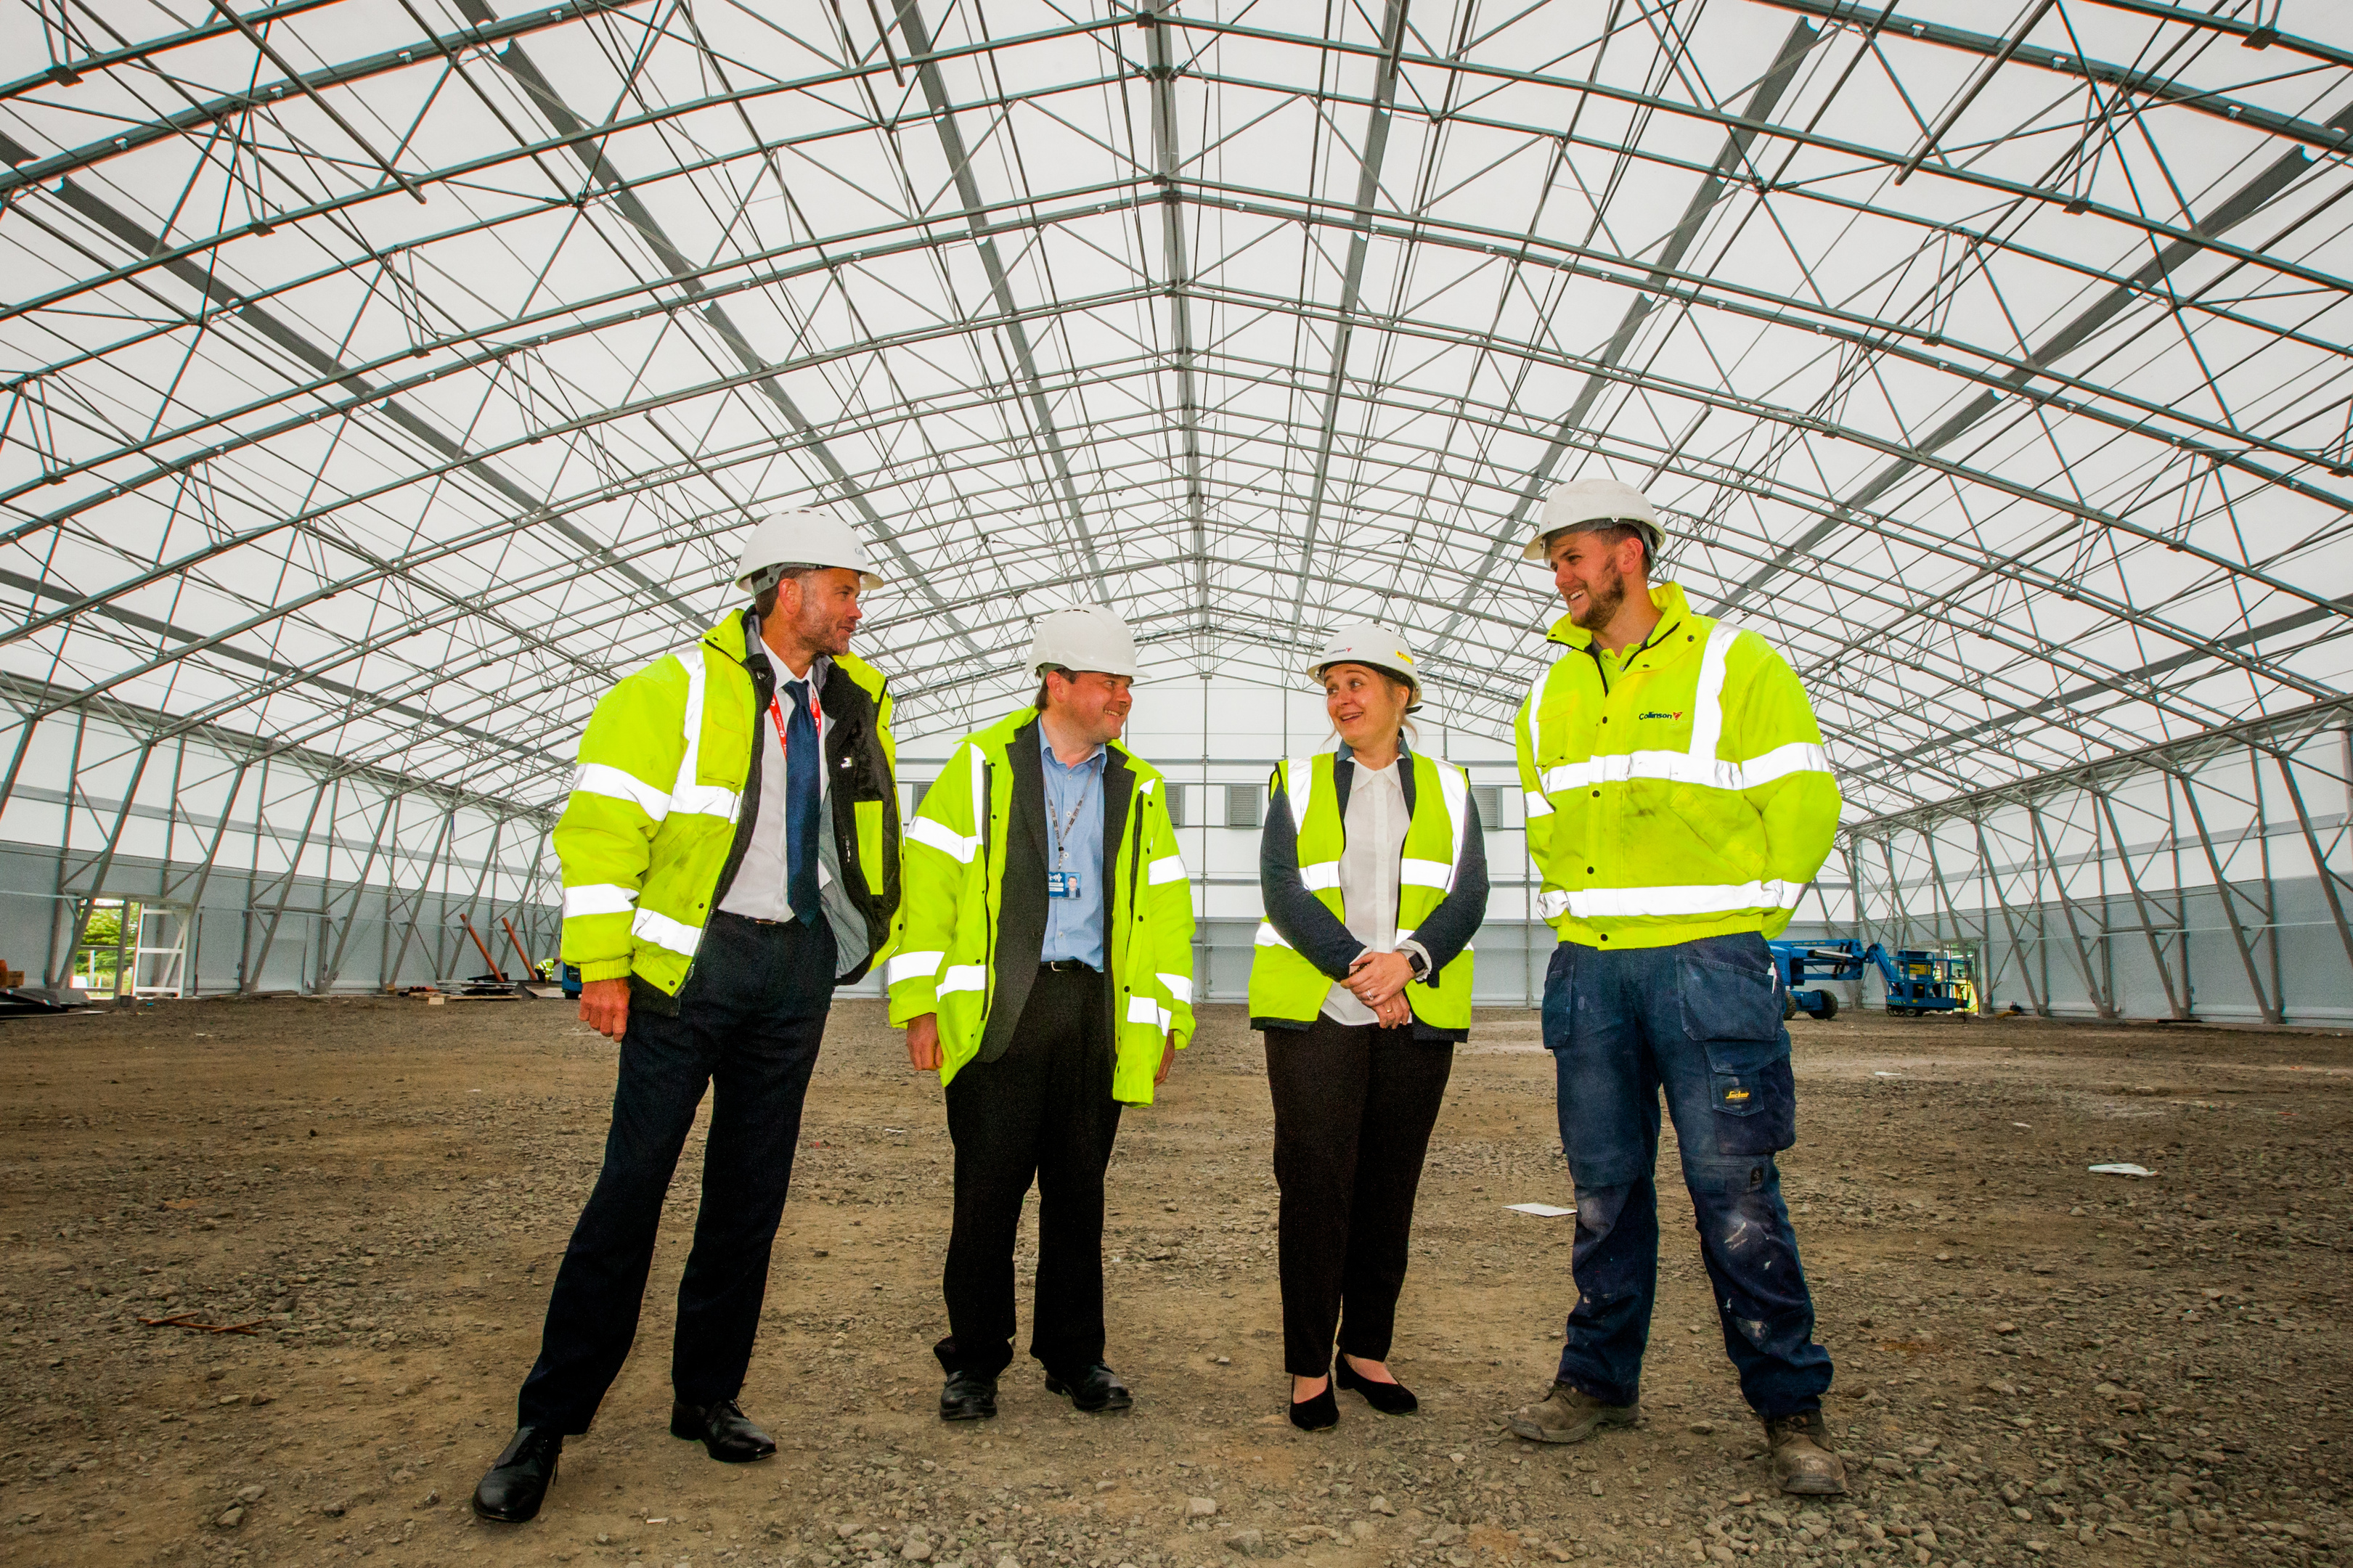 Left to right, Andy MacLelland (Sports Partnership Manager) John Purves (Architect at Fife Council), Sharon Johnstone (Area Manager, Fife Sports and Leisure Trust) and Rory Waite (Site Manager) in the building. Indoor Football Academy, Michael Woods Sports Centre, Glenrothes.